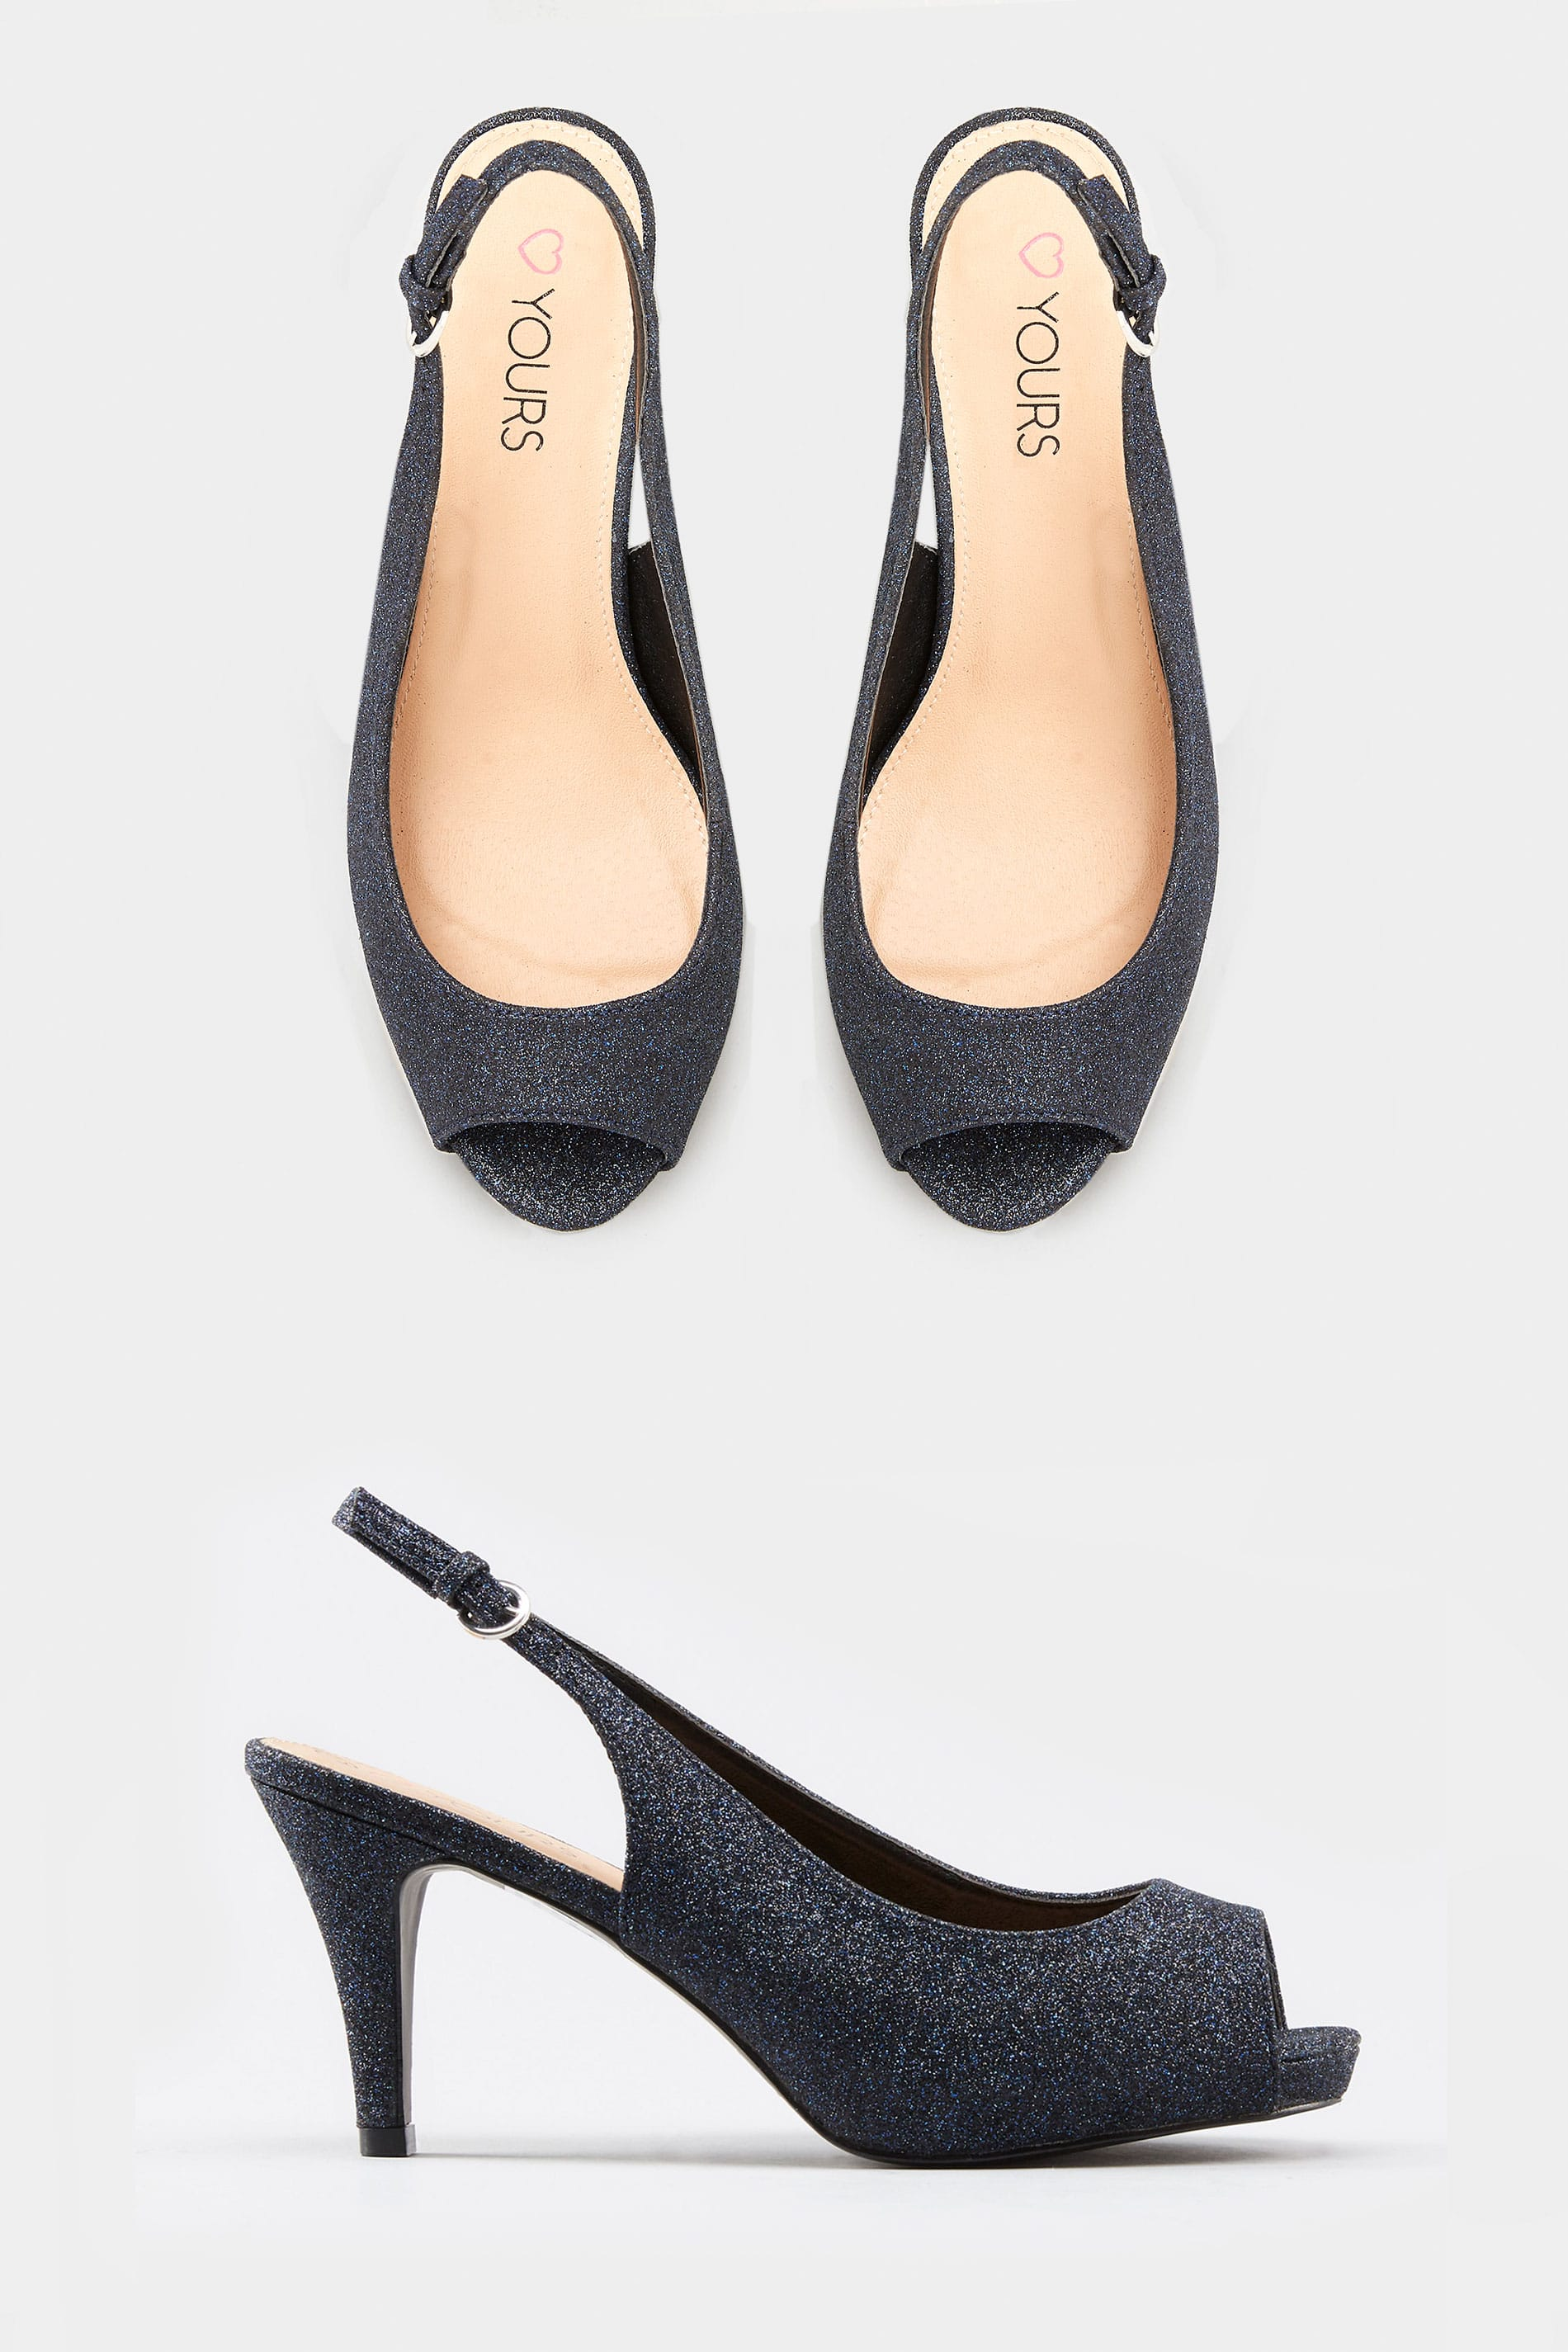 cab1f482df Loading. Hover over the images above to enlarge. Navy Glittery Peep Toe  Sling Back Heels. Navy Glittery Peep Toe Sling Back Heels